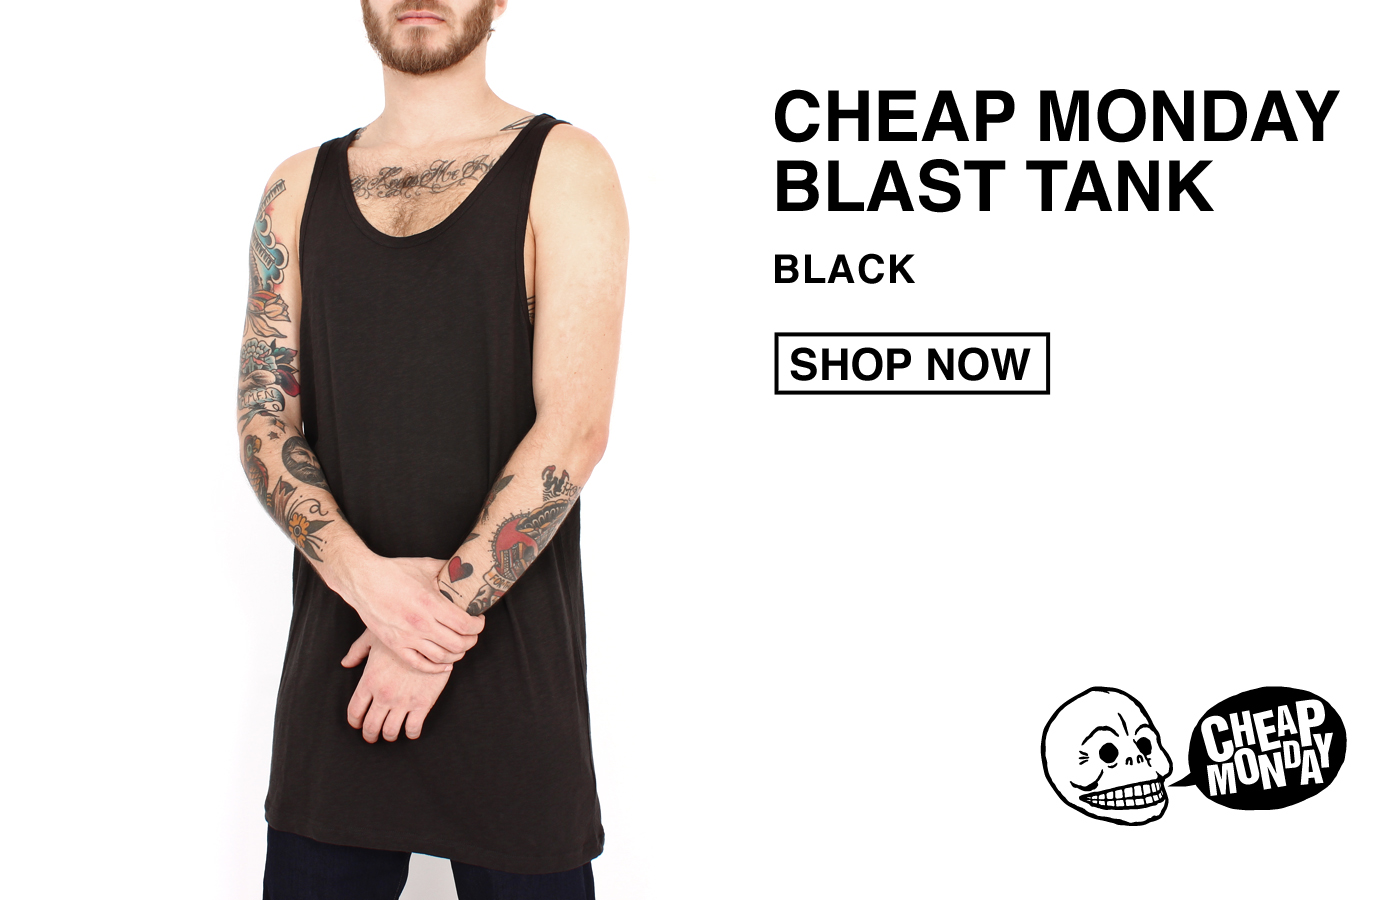 Cheap Monday Blast Tank